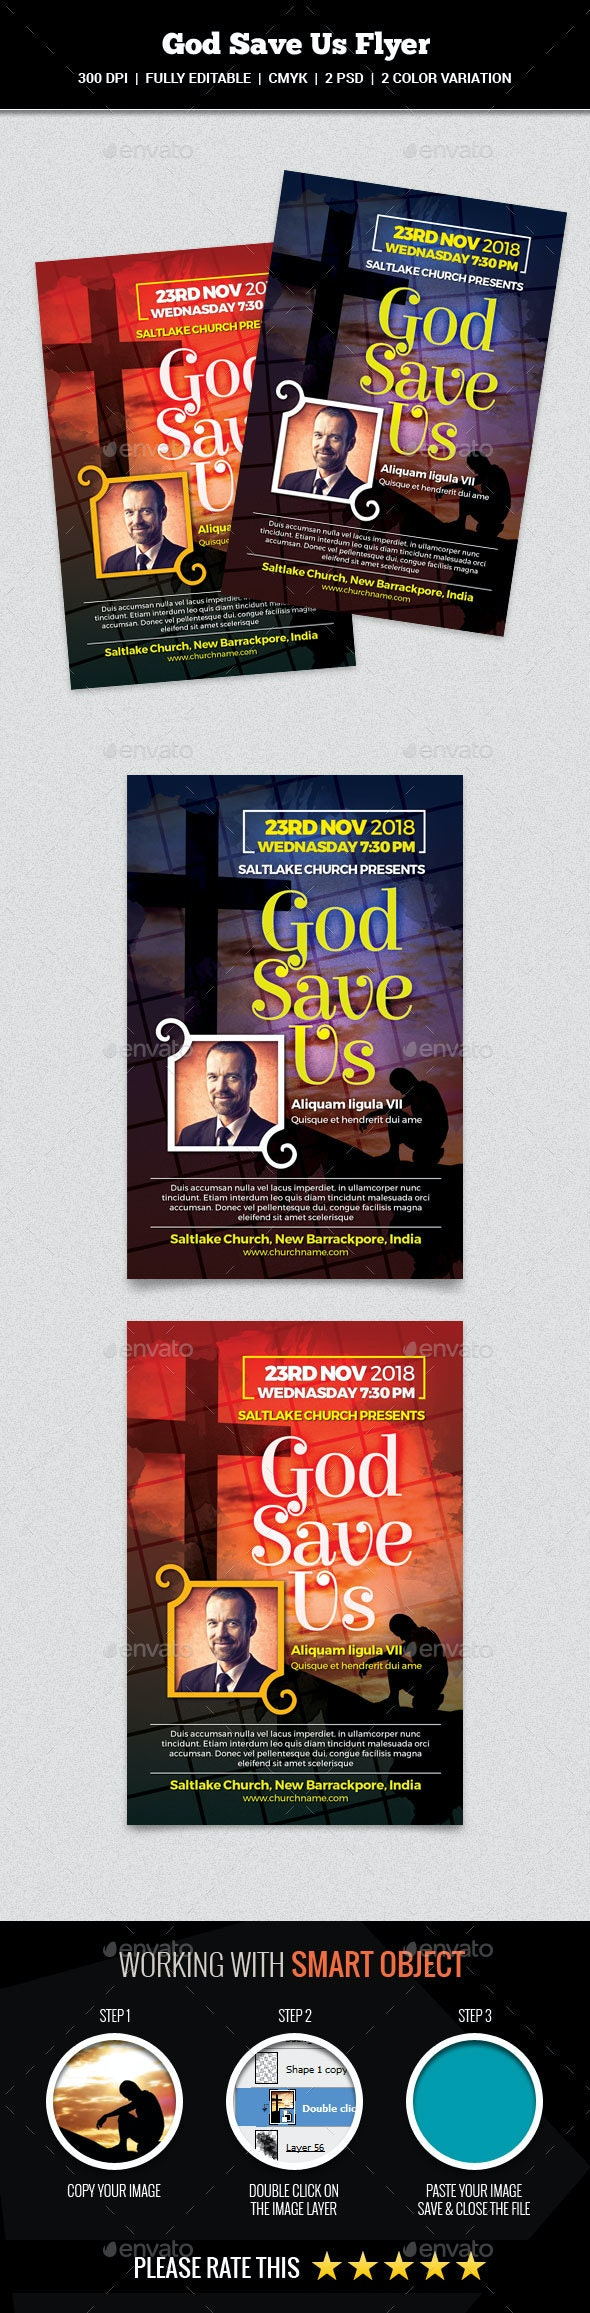 God Save Us Flyer - Church Flyers